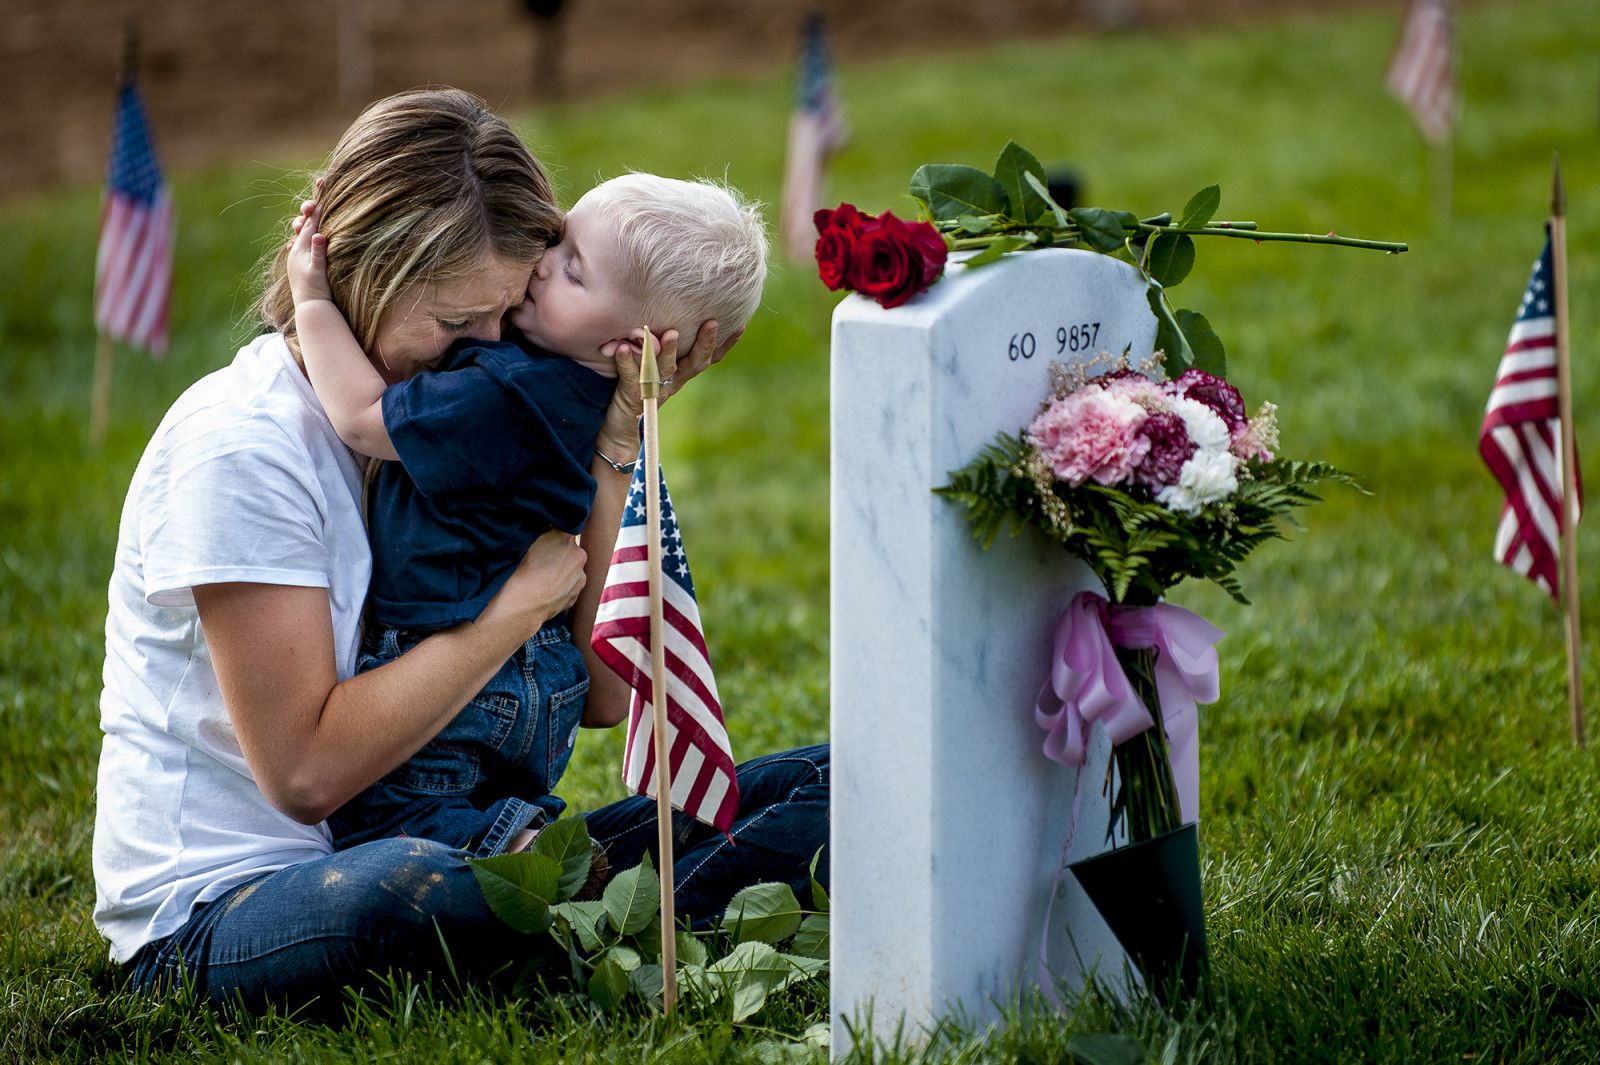 Brittany Jacobs of Hertford, NC, hugs her 17-month old son Christian at her husband, Marine SGT Christopher Jacobs' gravesite in Arlington National Cemetery on Memorial Day in Arlington, VA, USA on 28 May, 2012. (Pete Marovich/ European PressPhoto Agency)